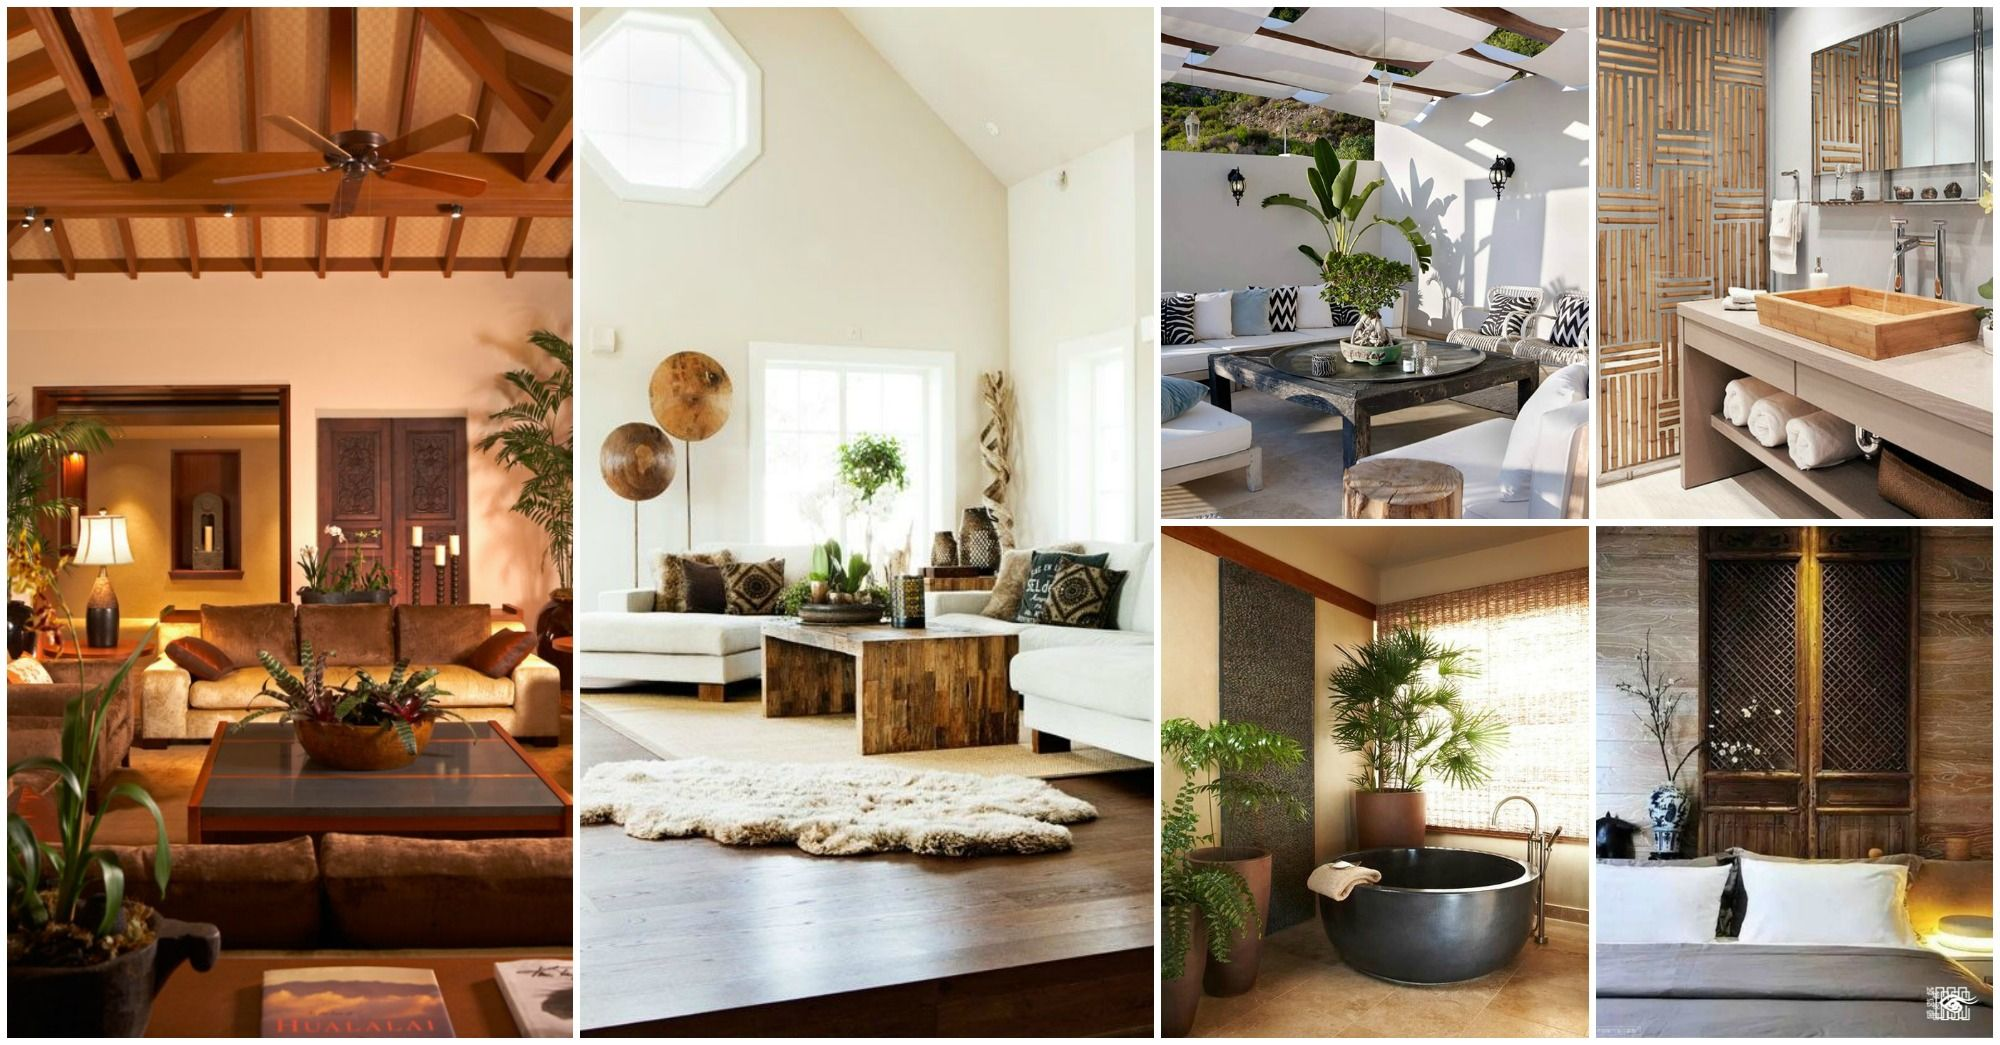 12 Impressive Modern Asian Home Decor Ideas With Images Asian